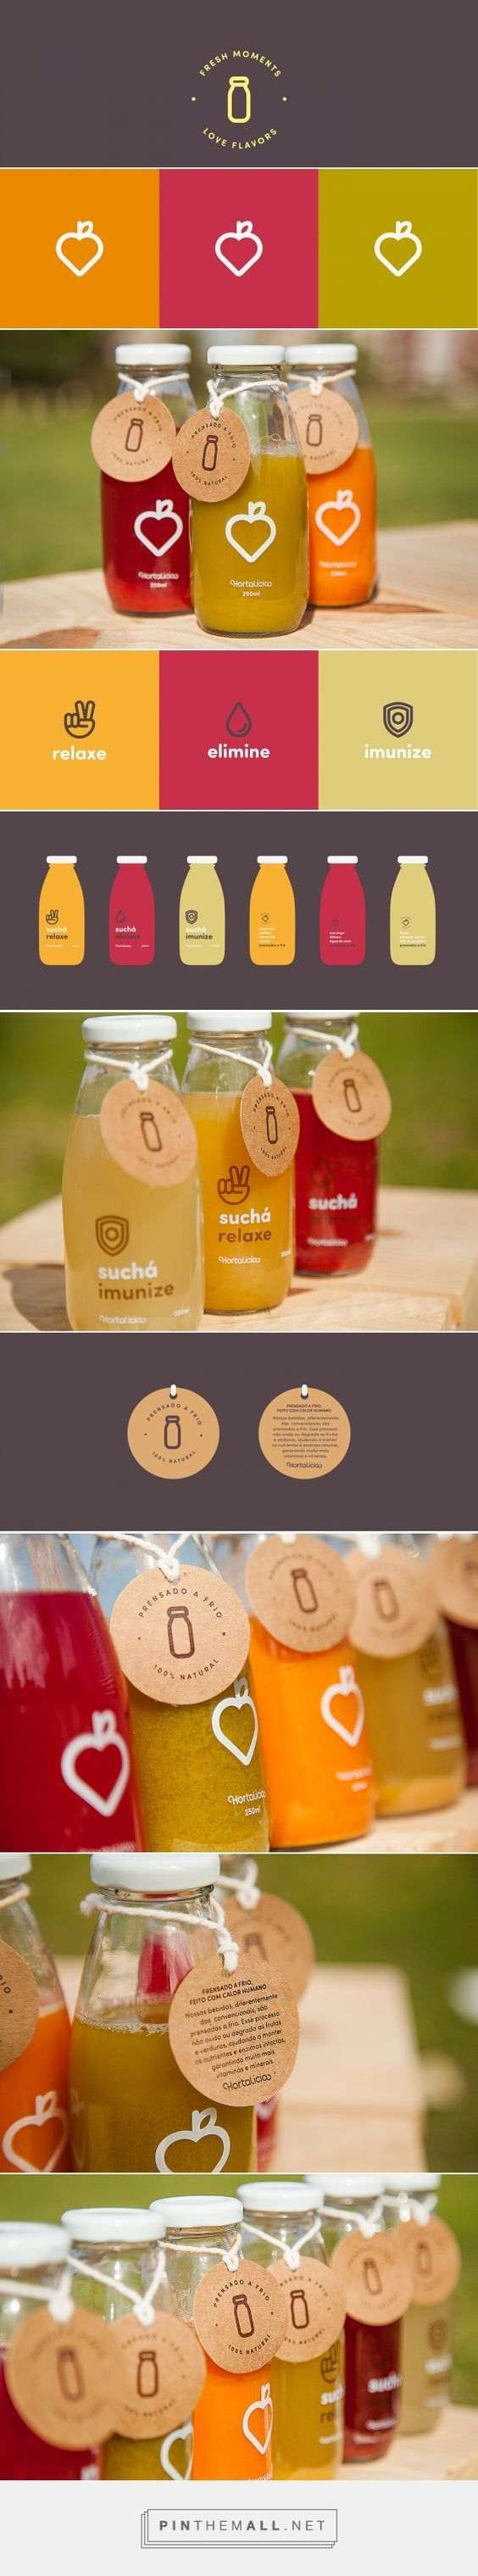 Sucos e Suchás Hortalícia on Behance curated by Packaging Diva PD.  Juices and tea are 100 % natural. made without addition of water, sugar or preservatives. To showcase these attributes, packaging uses a minimalistic and transparent, giving prominence to the juice and pointing out the ingredients that compose it.: